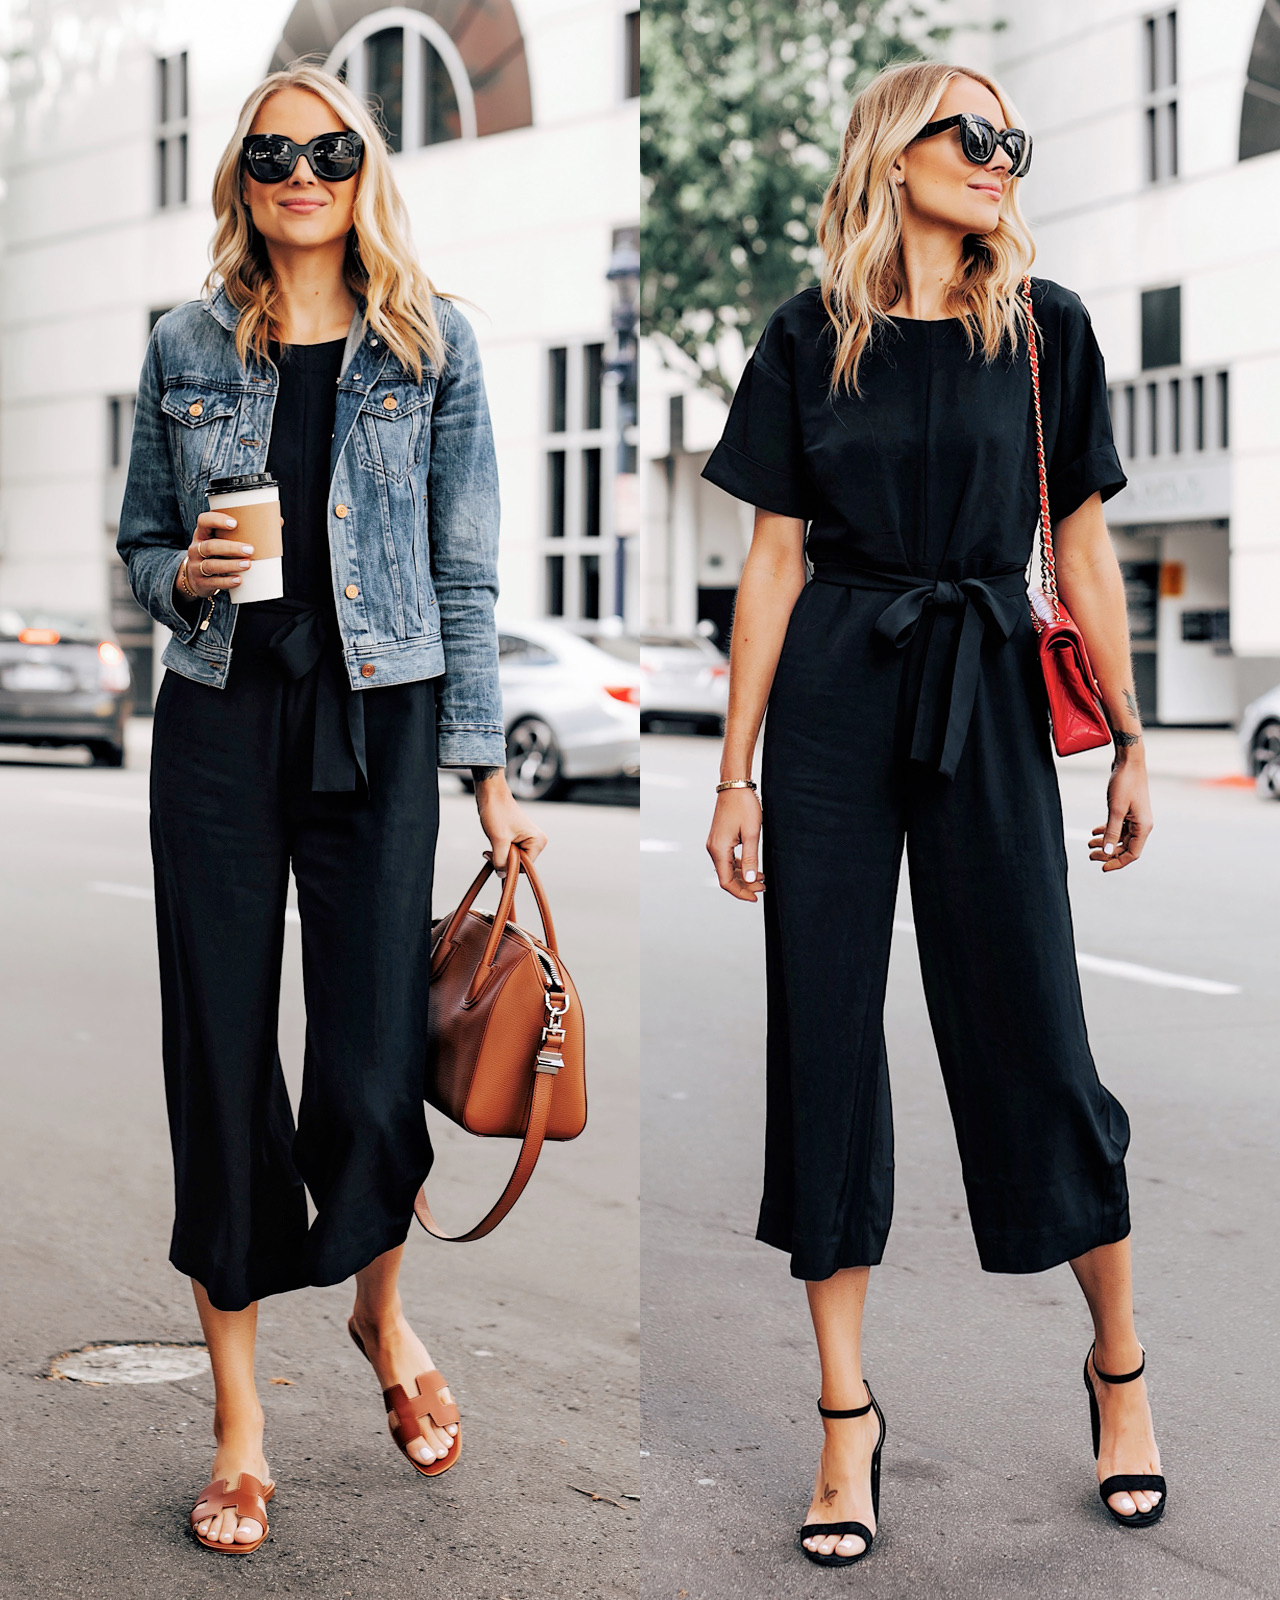 Fashion Jackson Wearing Everlane Black Jumpsuit Denim Jacket Sandals